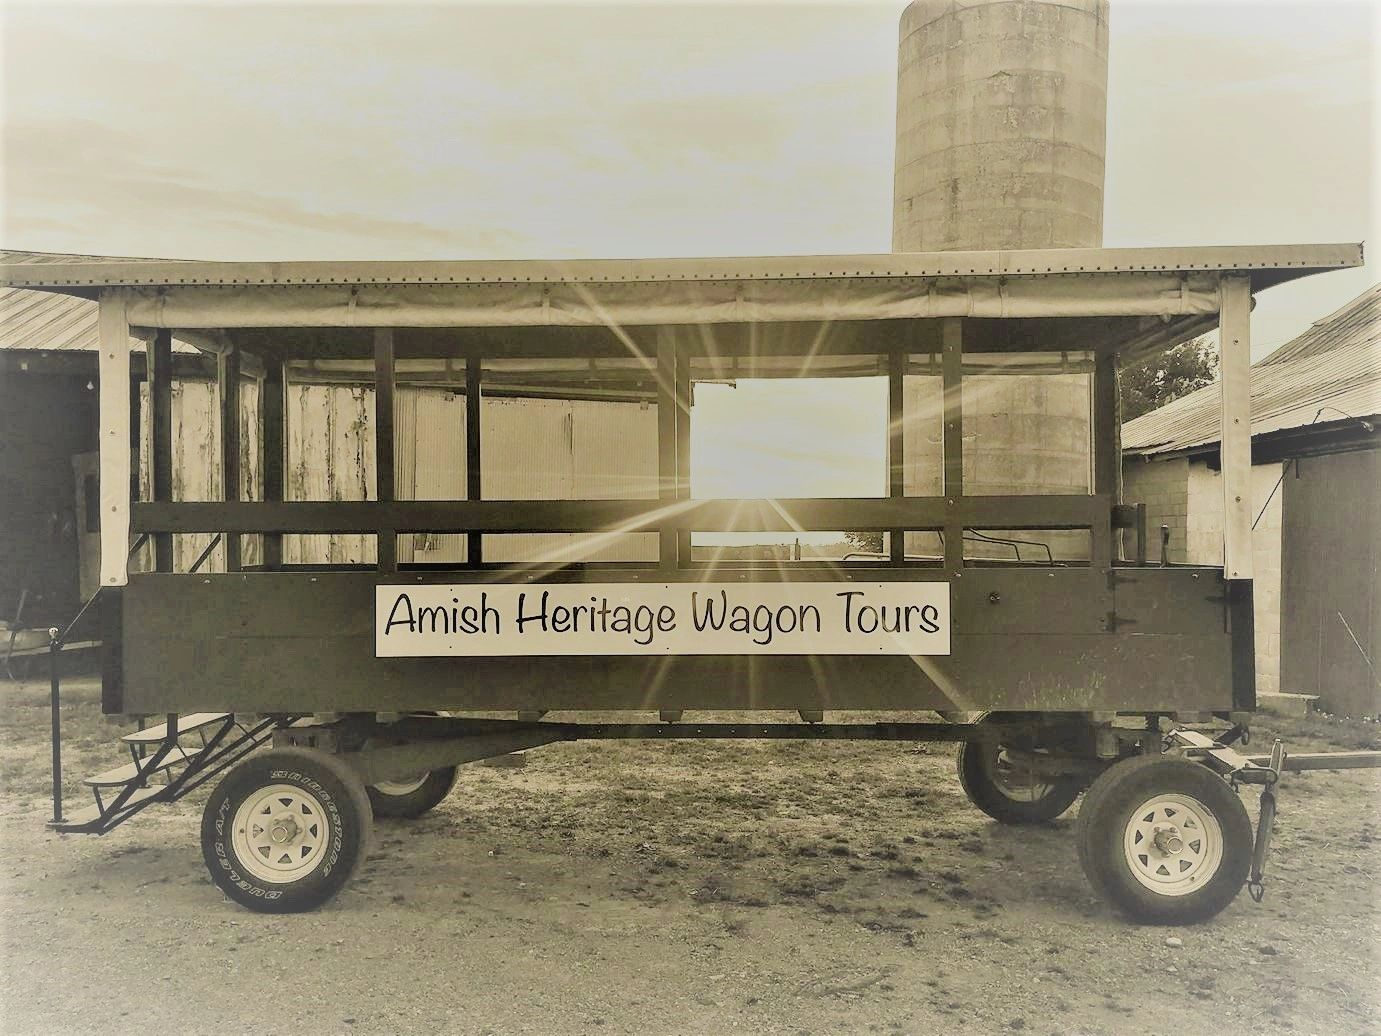 Amish welcome center, Amish, Ethridge, Amish wagon tours, wagon tours, Tennessee, maps, family fun